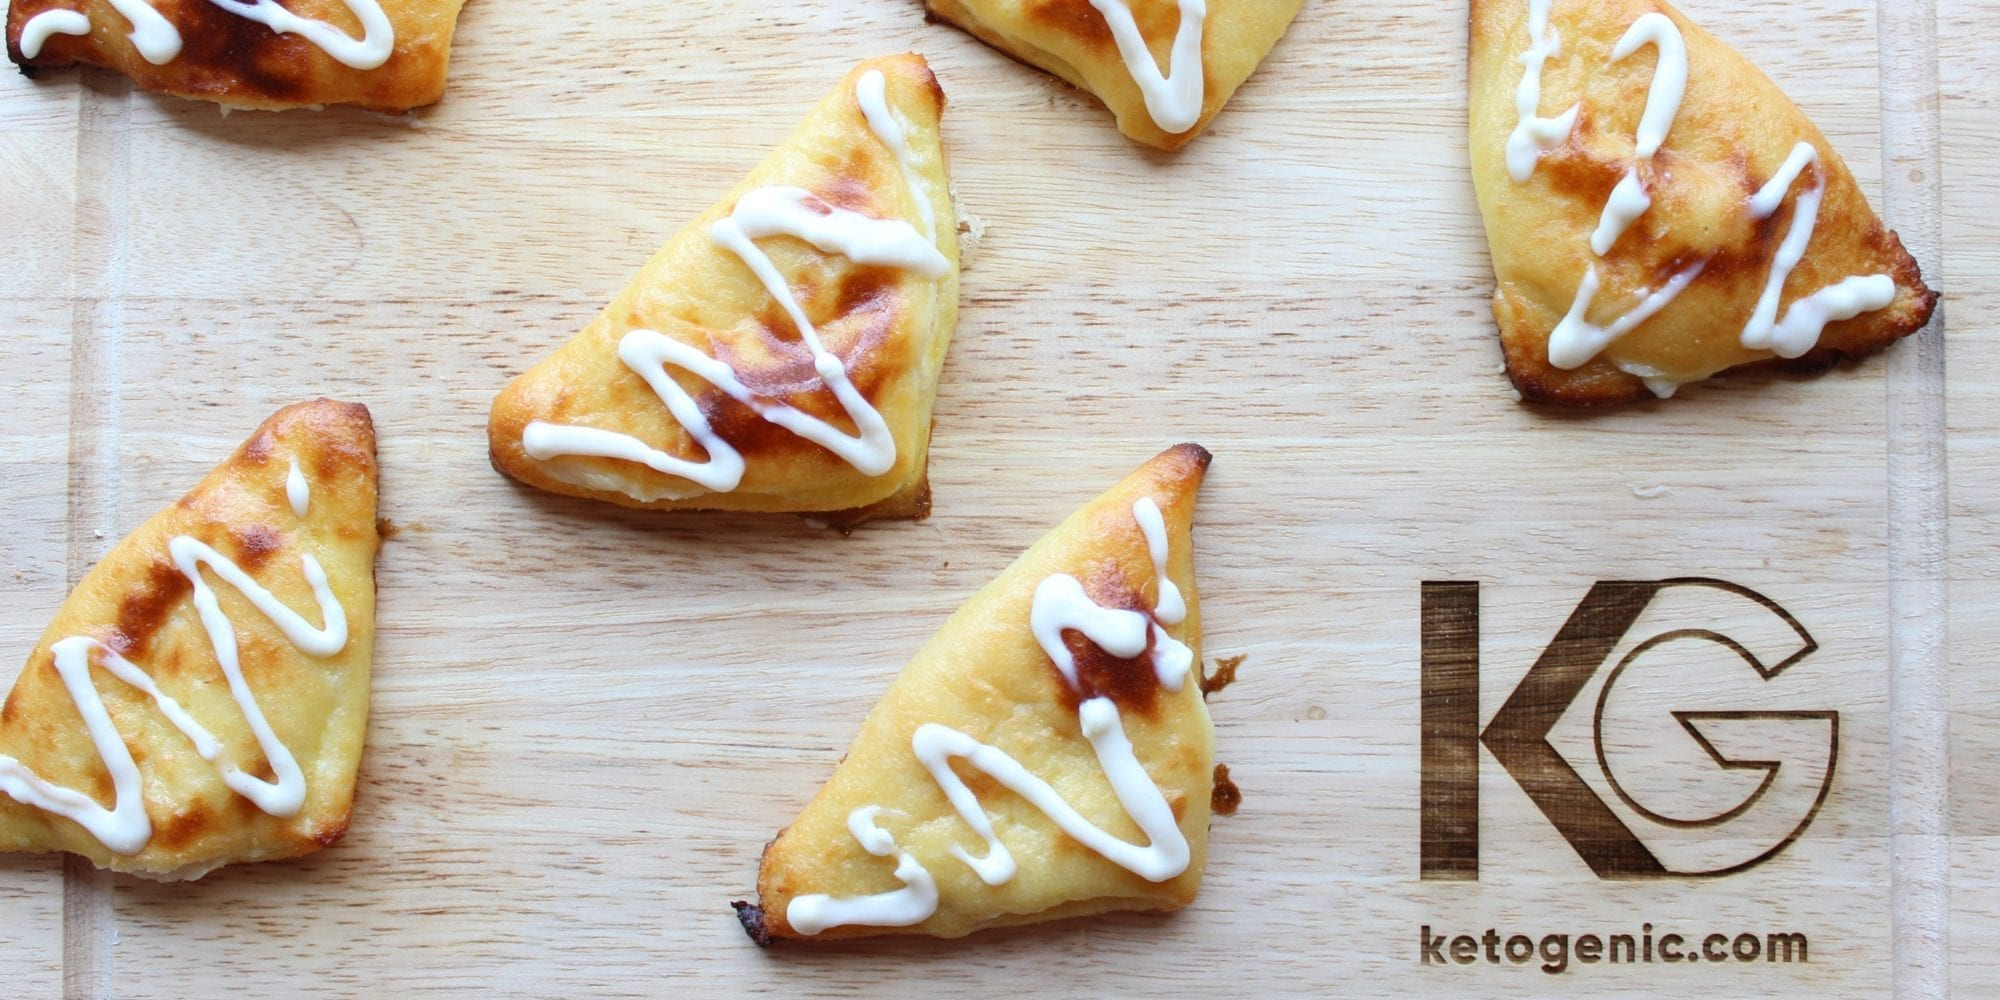 Keto Raspberry Turnovers